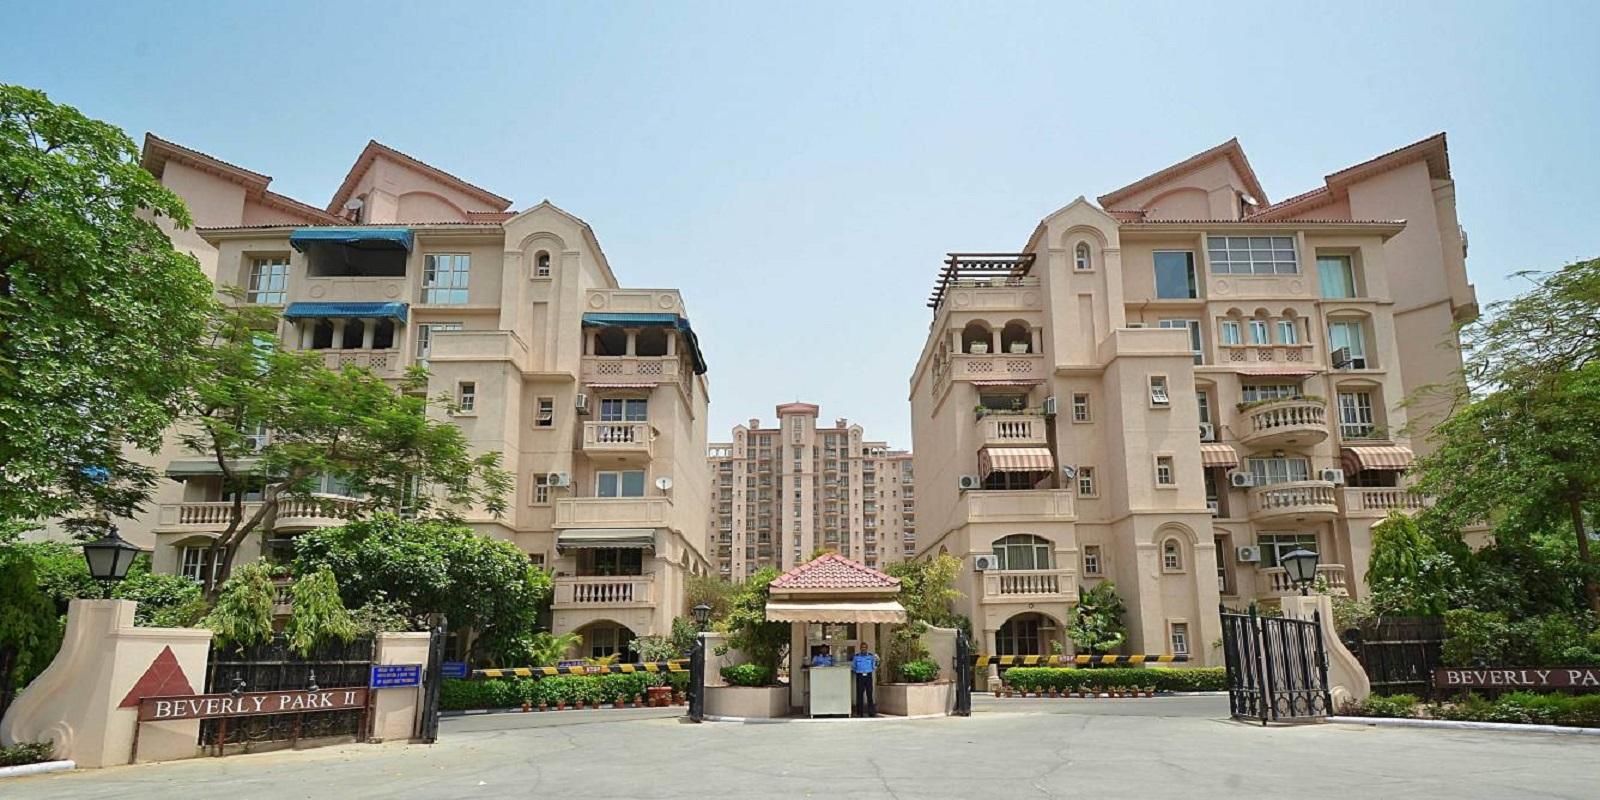 dlf beverly park ii project project large image1